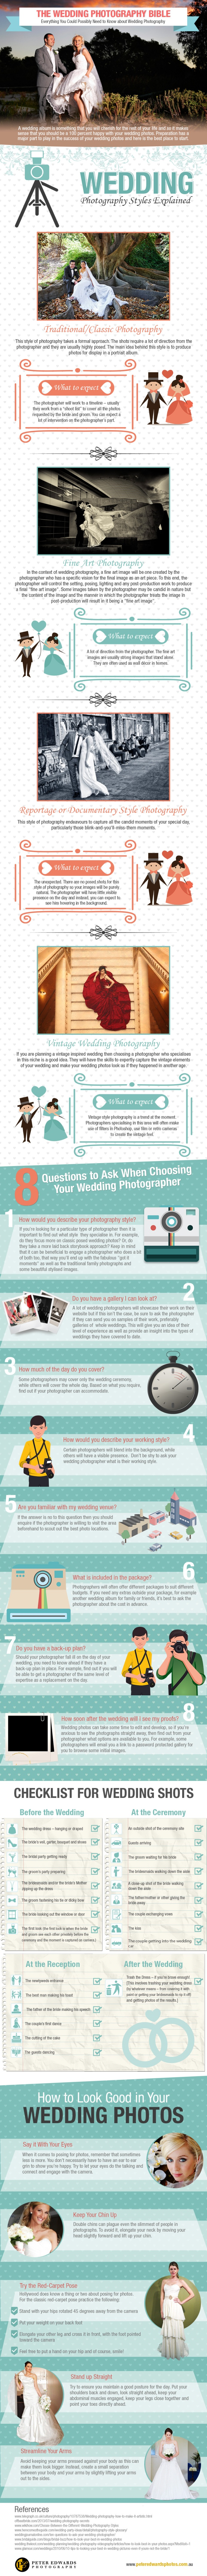 Wedding-photography-Bible-Infographic